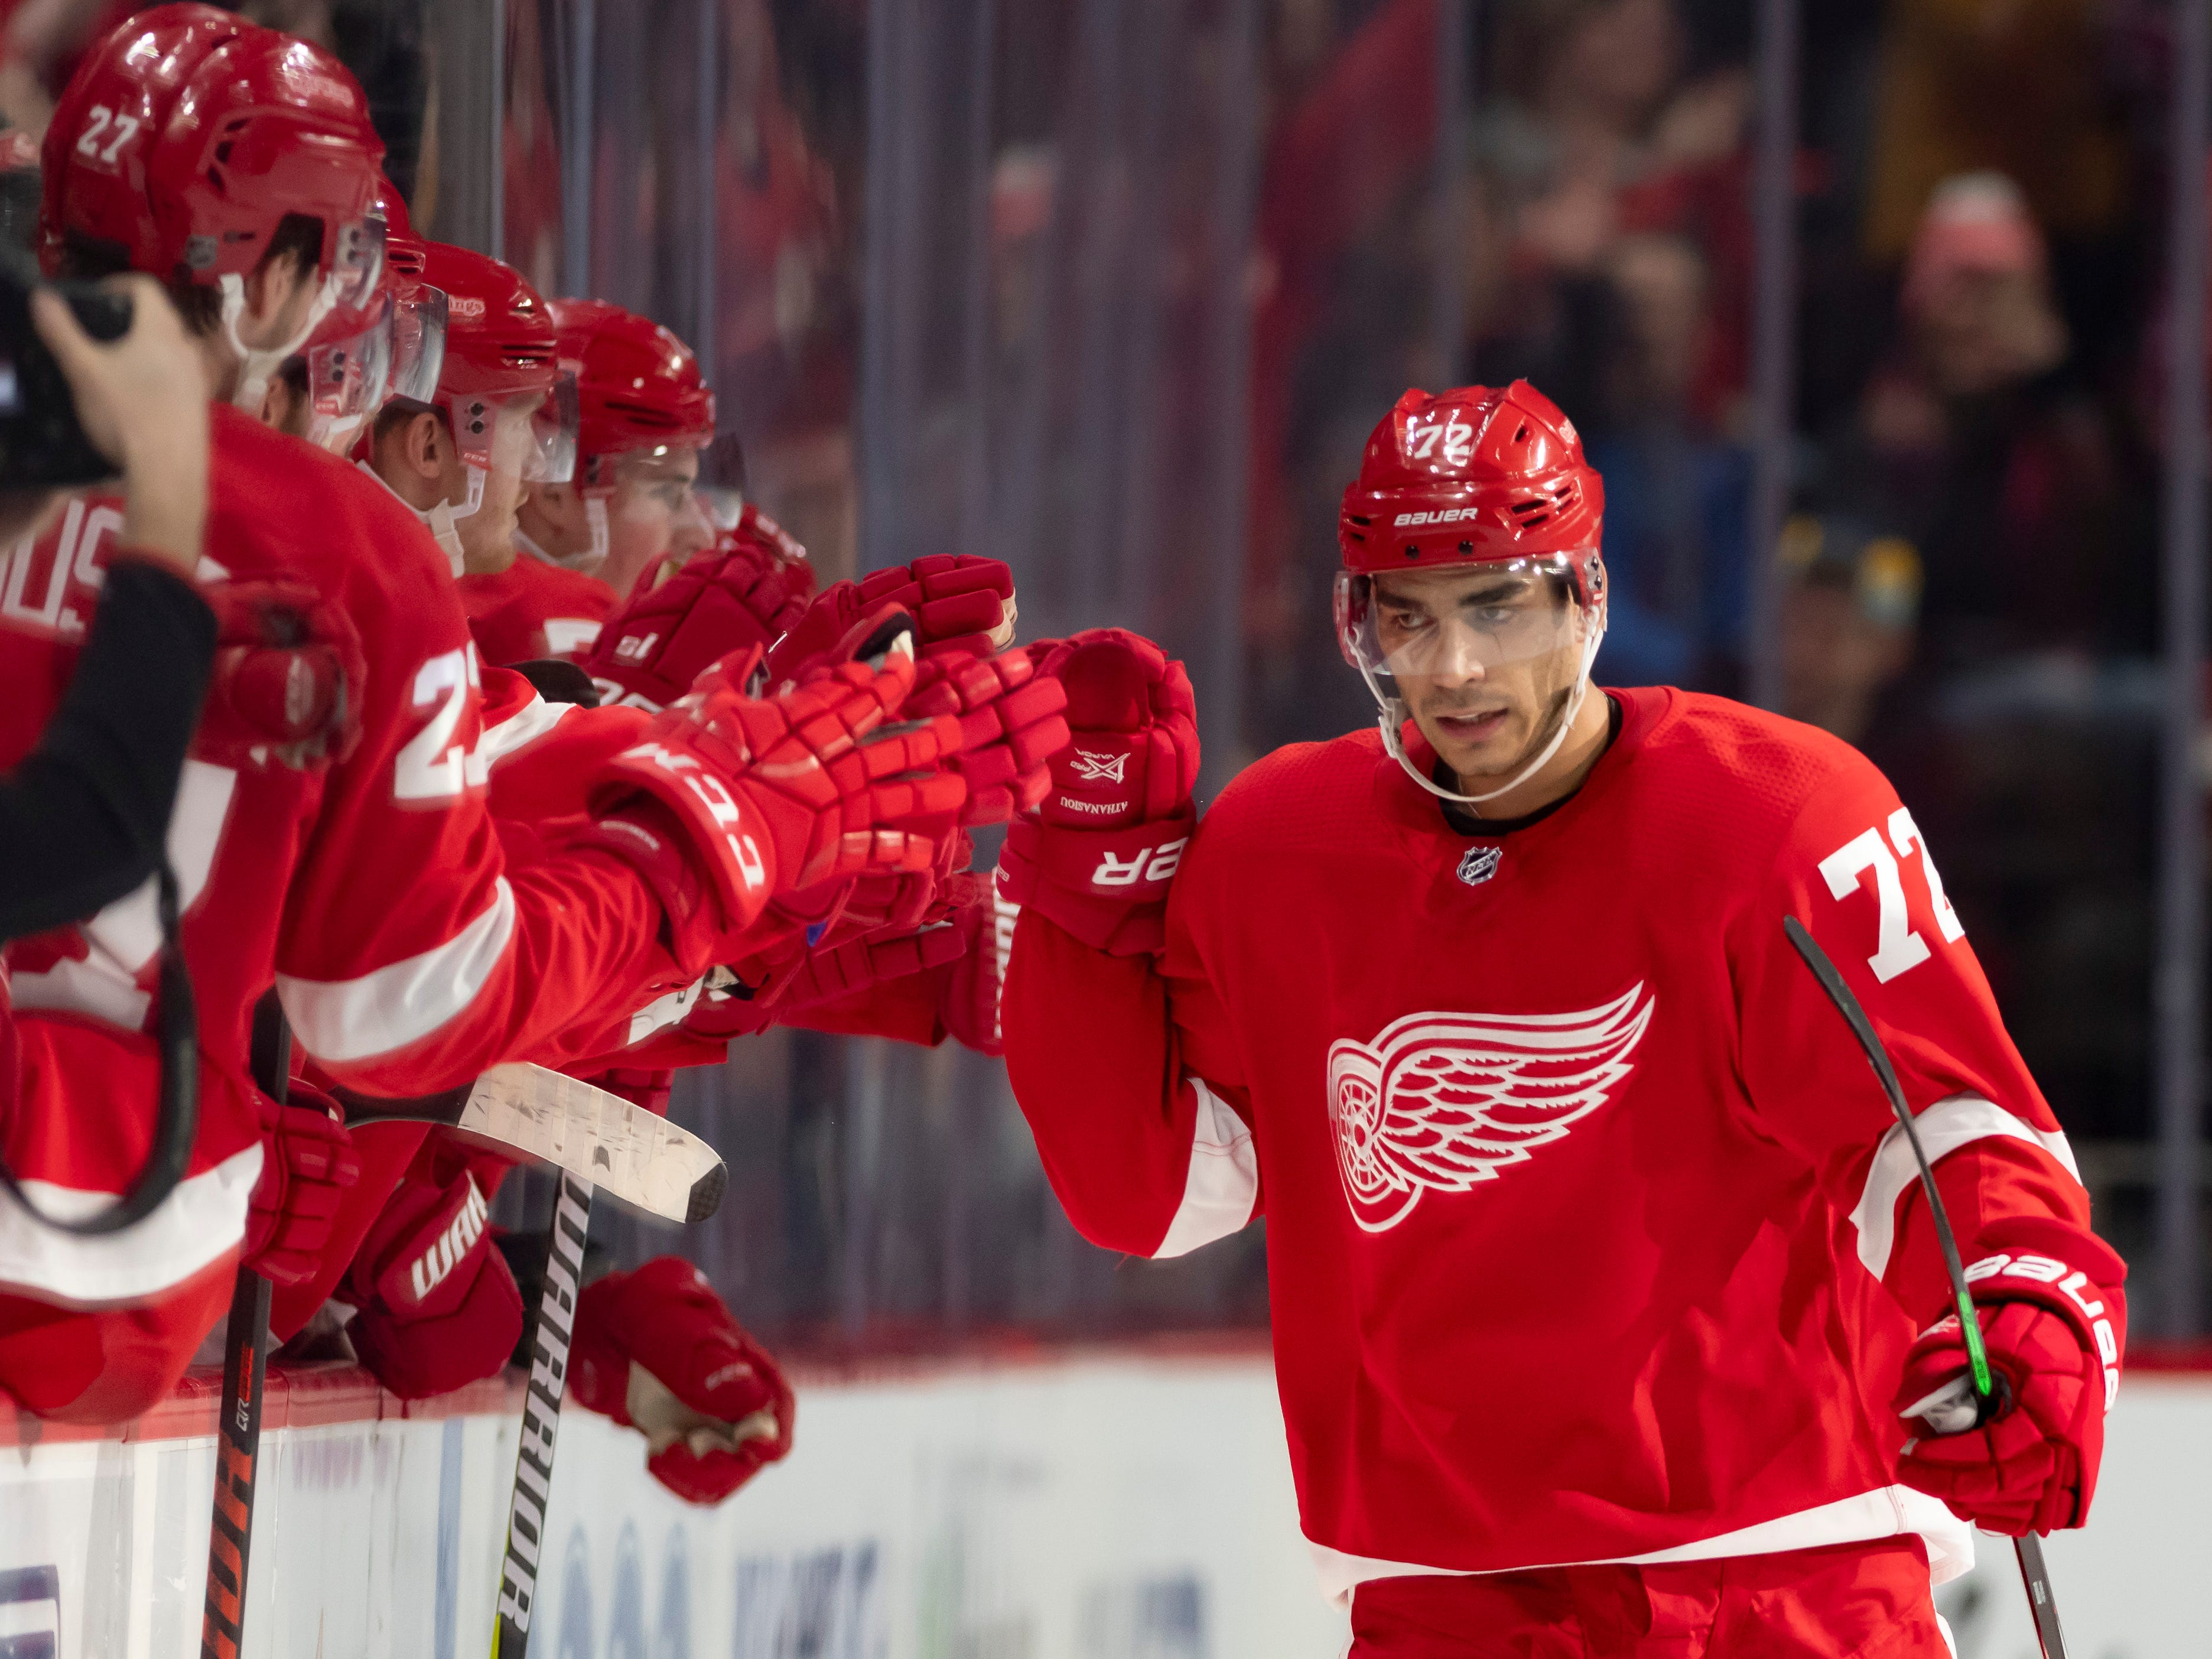 Detroit center Andreas Athanasiou celebrates with his teammates after scoring on a penalty shot in the second period.